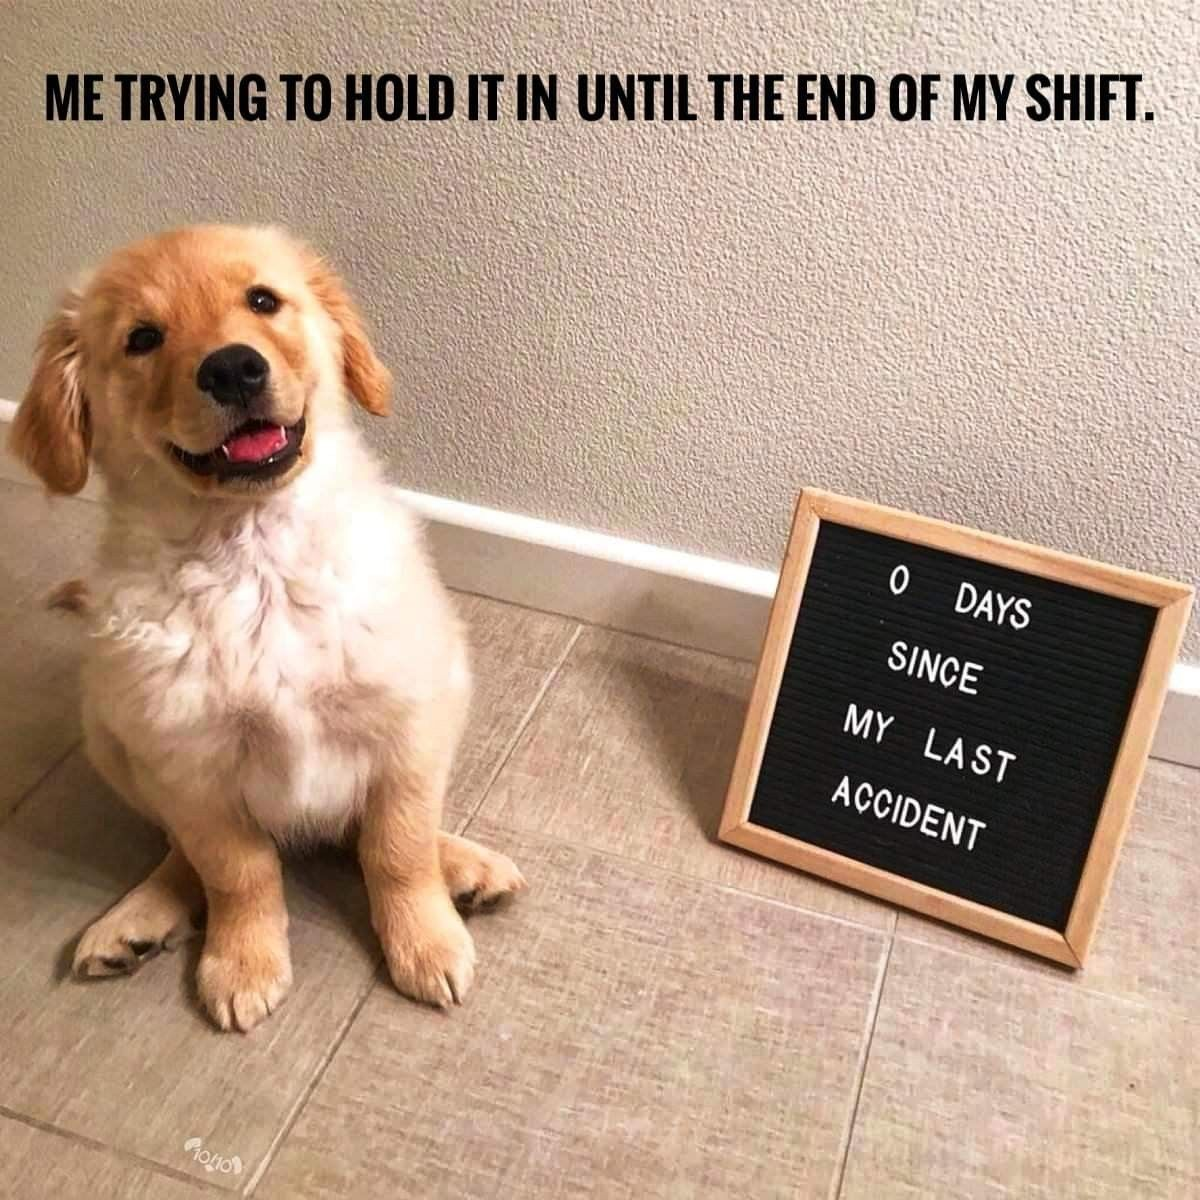 Dog Supplies Store For Treats Care And Accessories For Your Pet Dogs Funny Dog Memes Cute Dog Memes Dog Memes